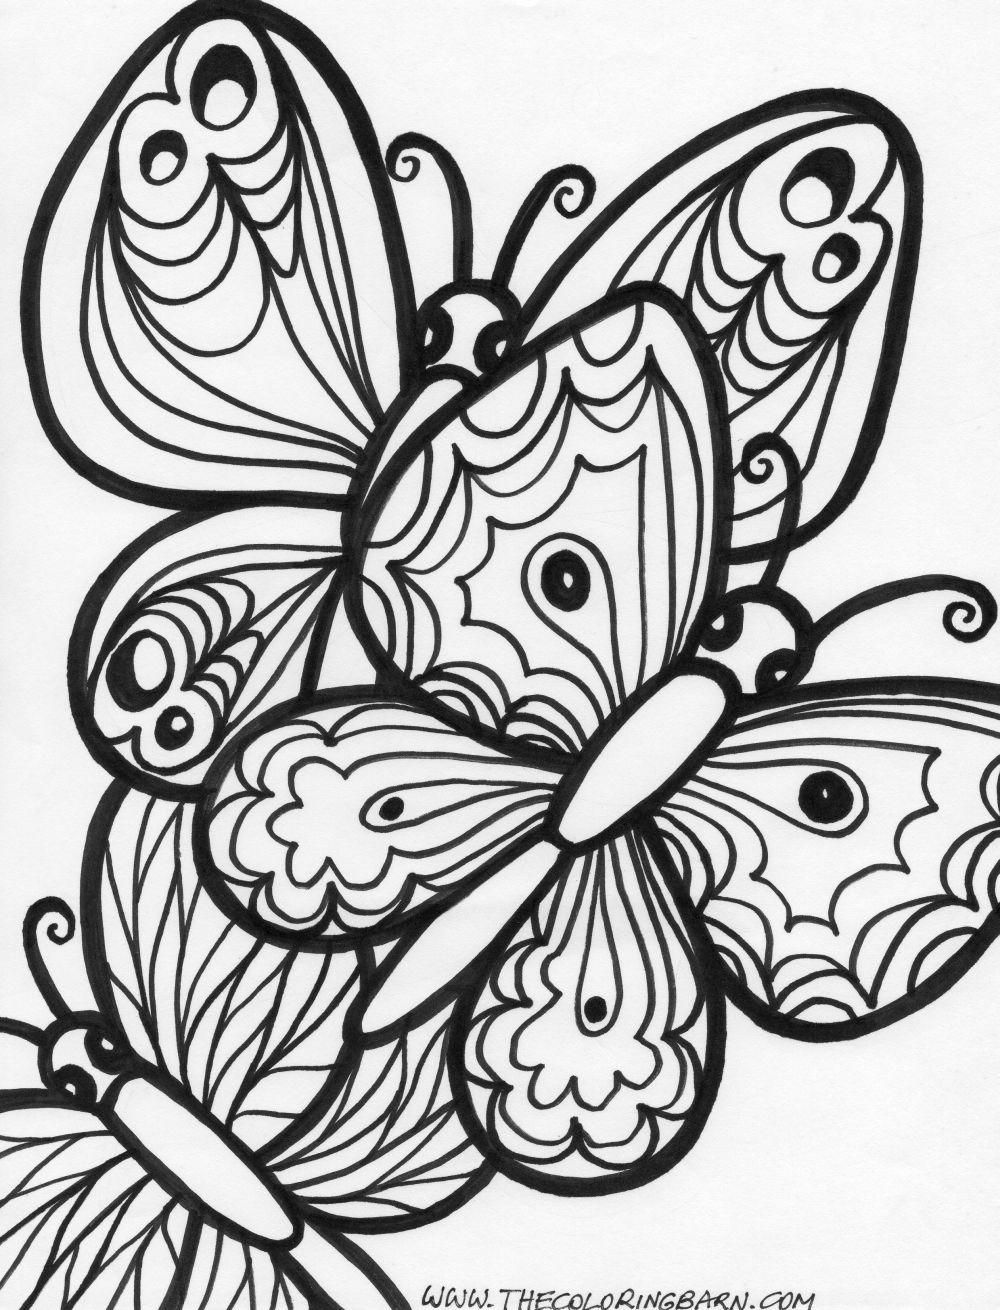 Printable Coloring Pages For Adults With Dementia Coloring Page Butterfly Coloring Page Detailed Coloring Pages Mandala Coloring Pages